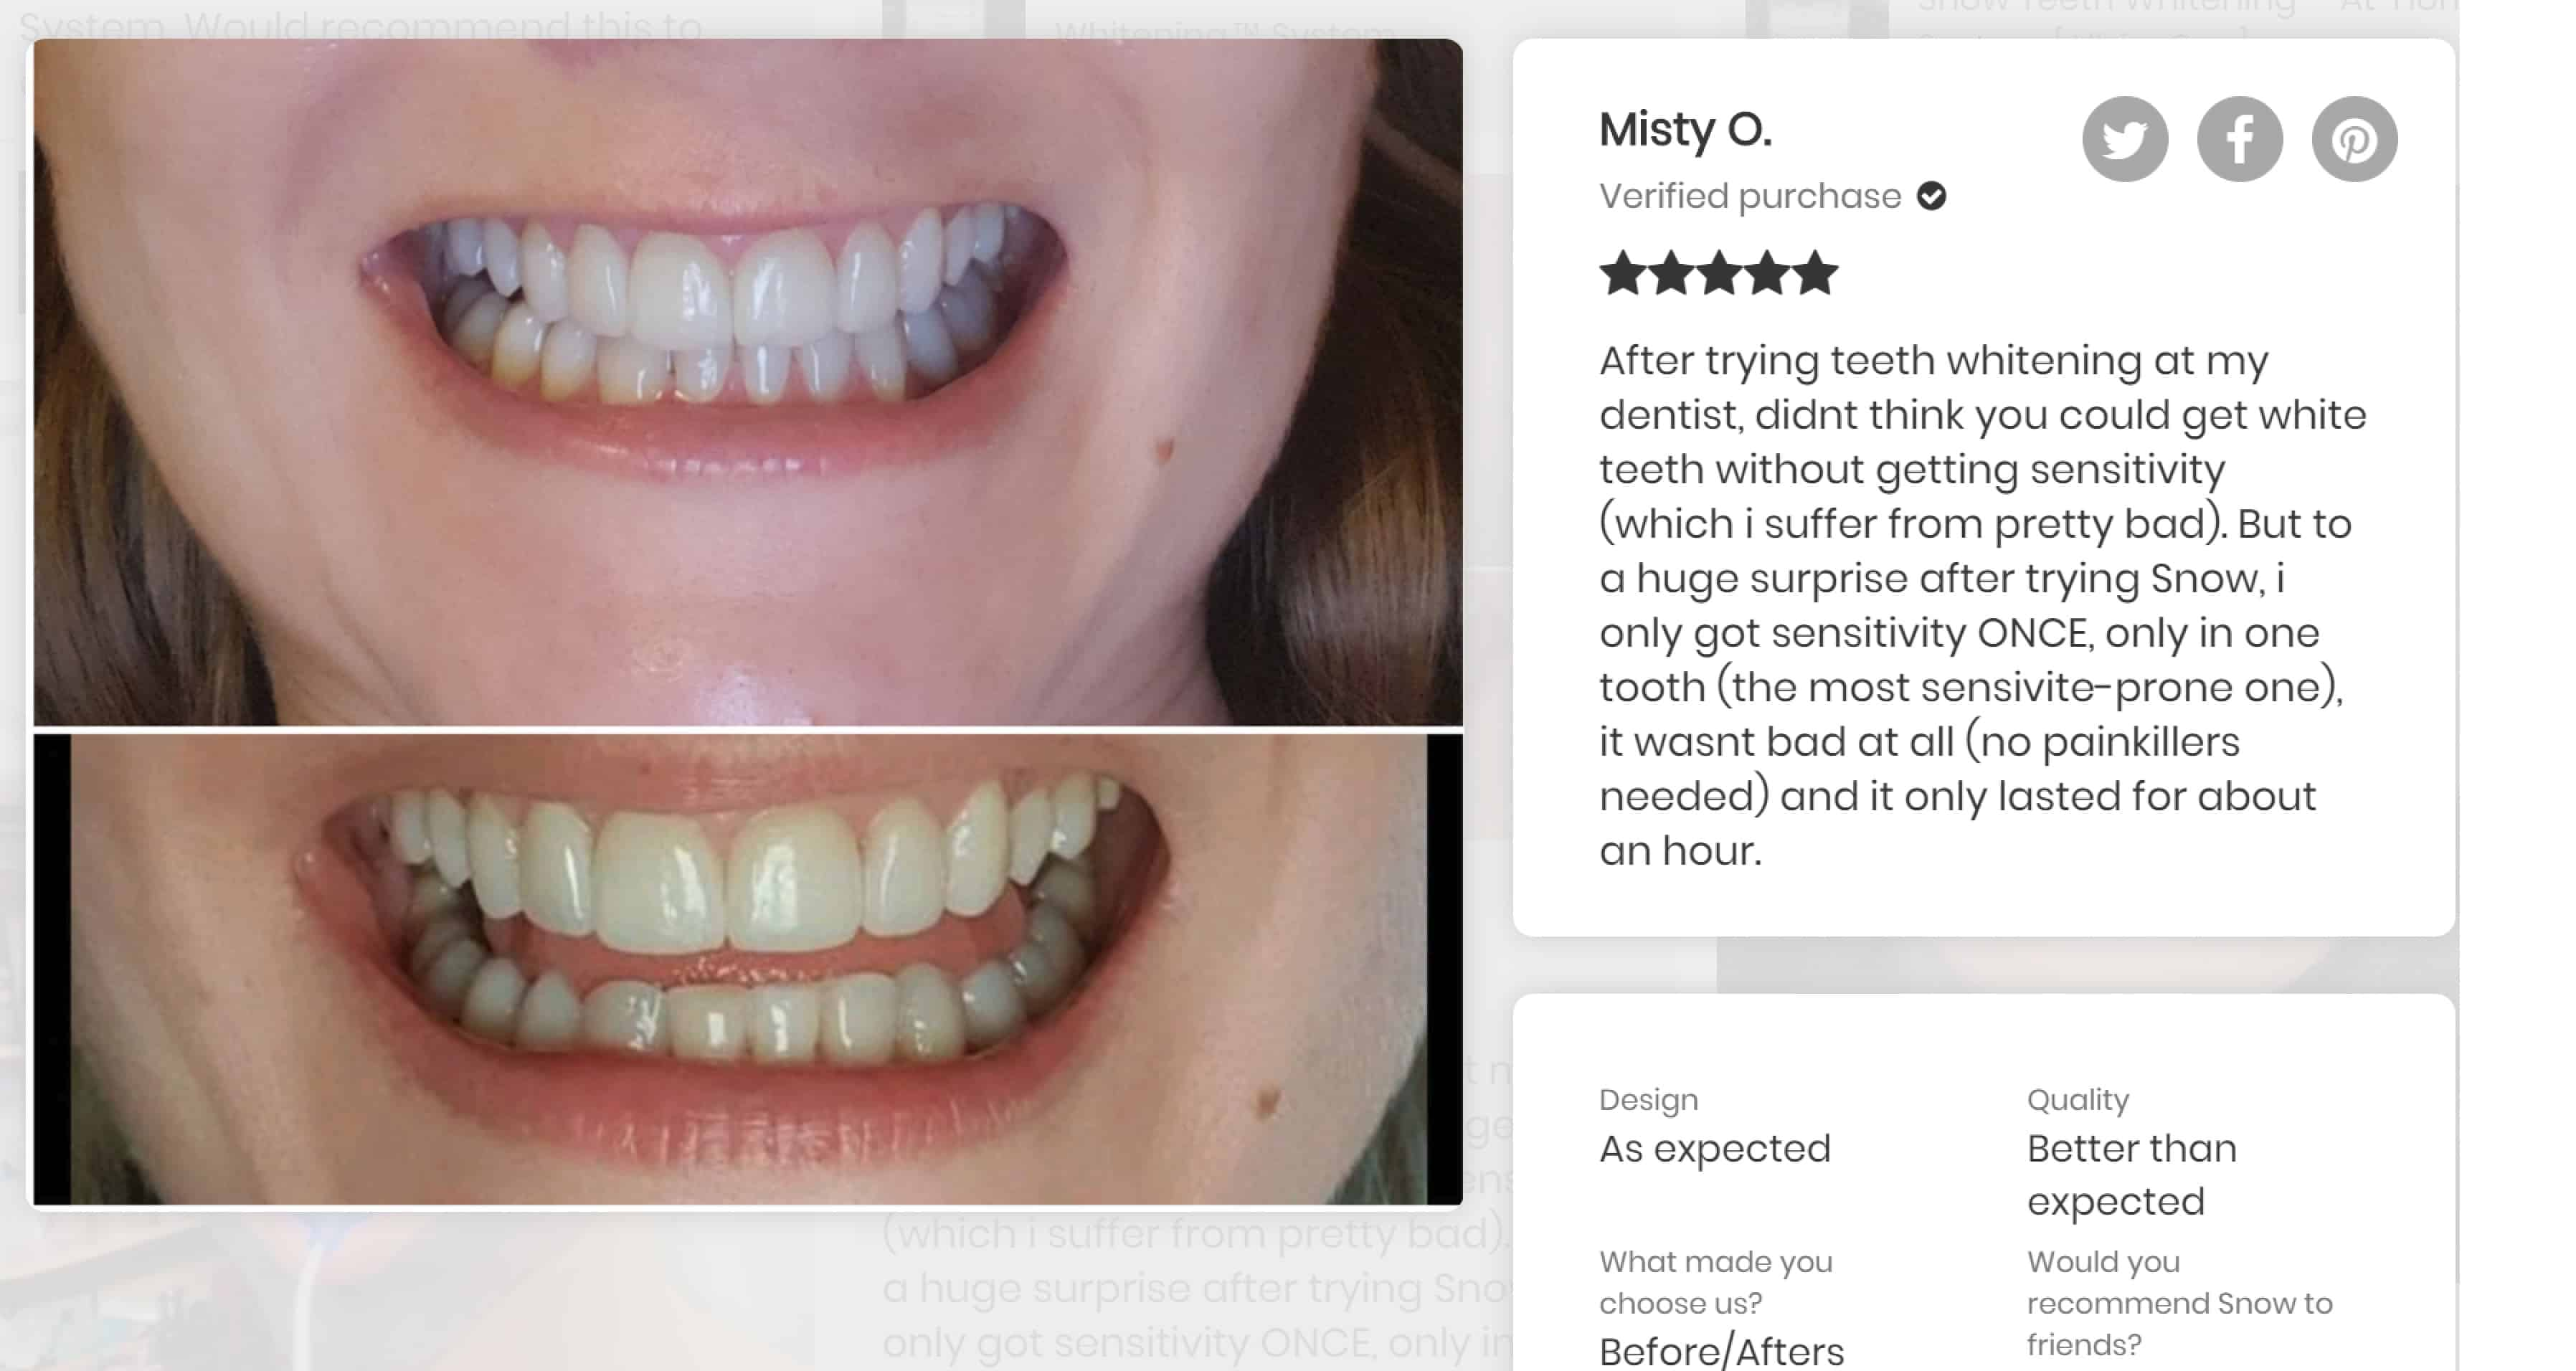 Snow Teeth Whitening Discount Voucher For Upgrade